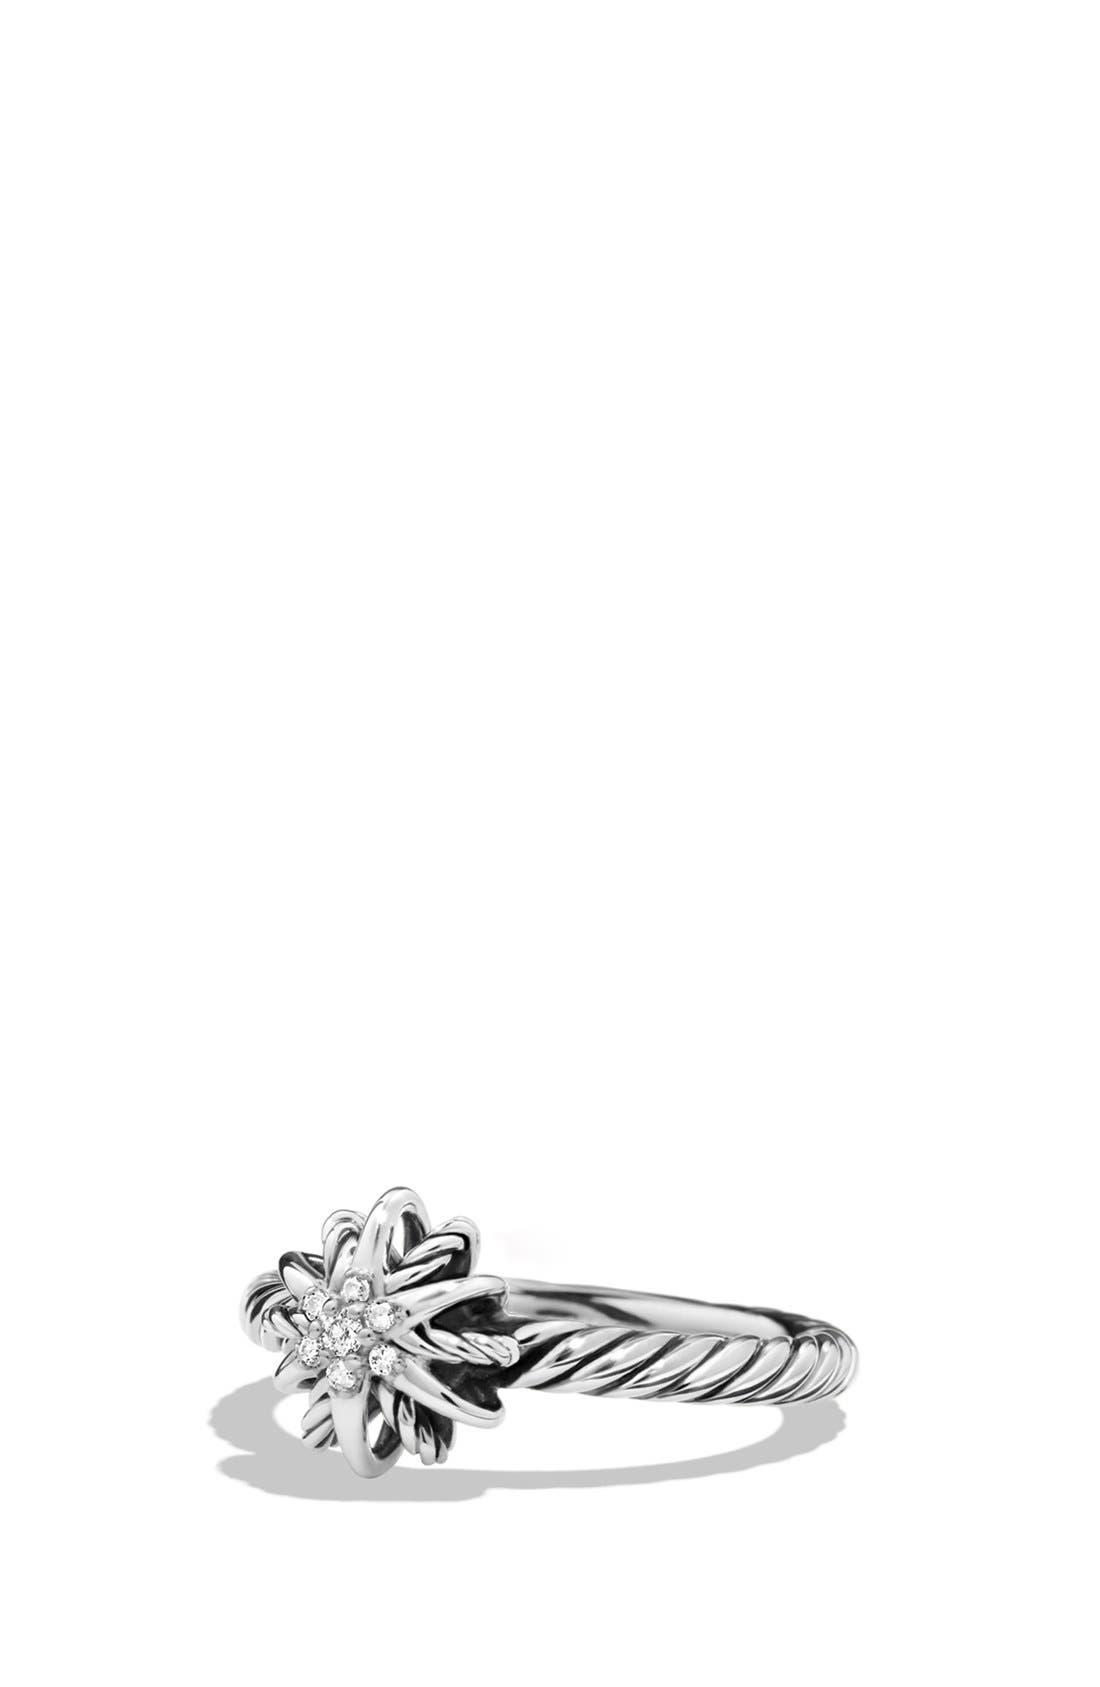 David Yurman 'Starburst' Ring with Diamonds